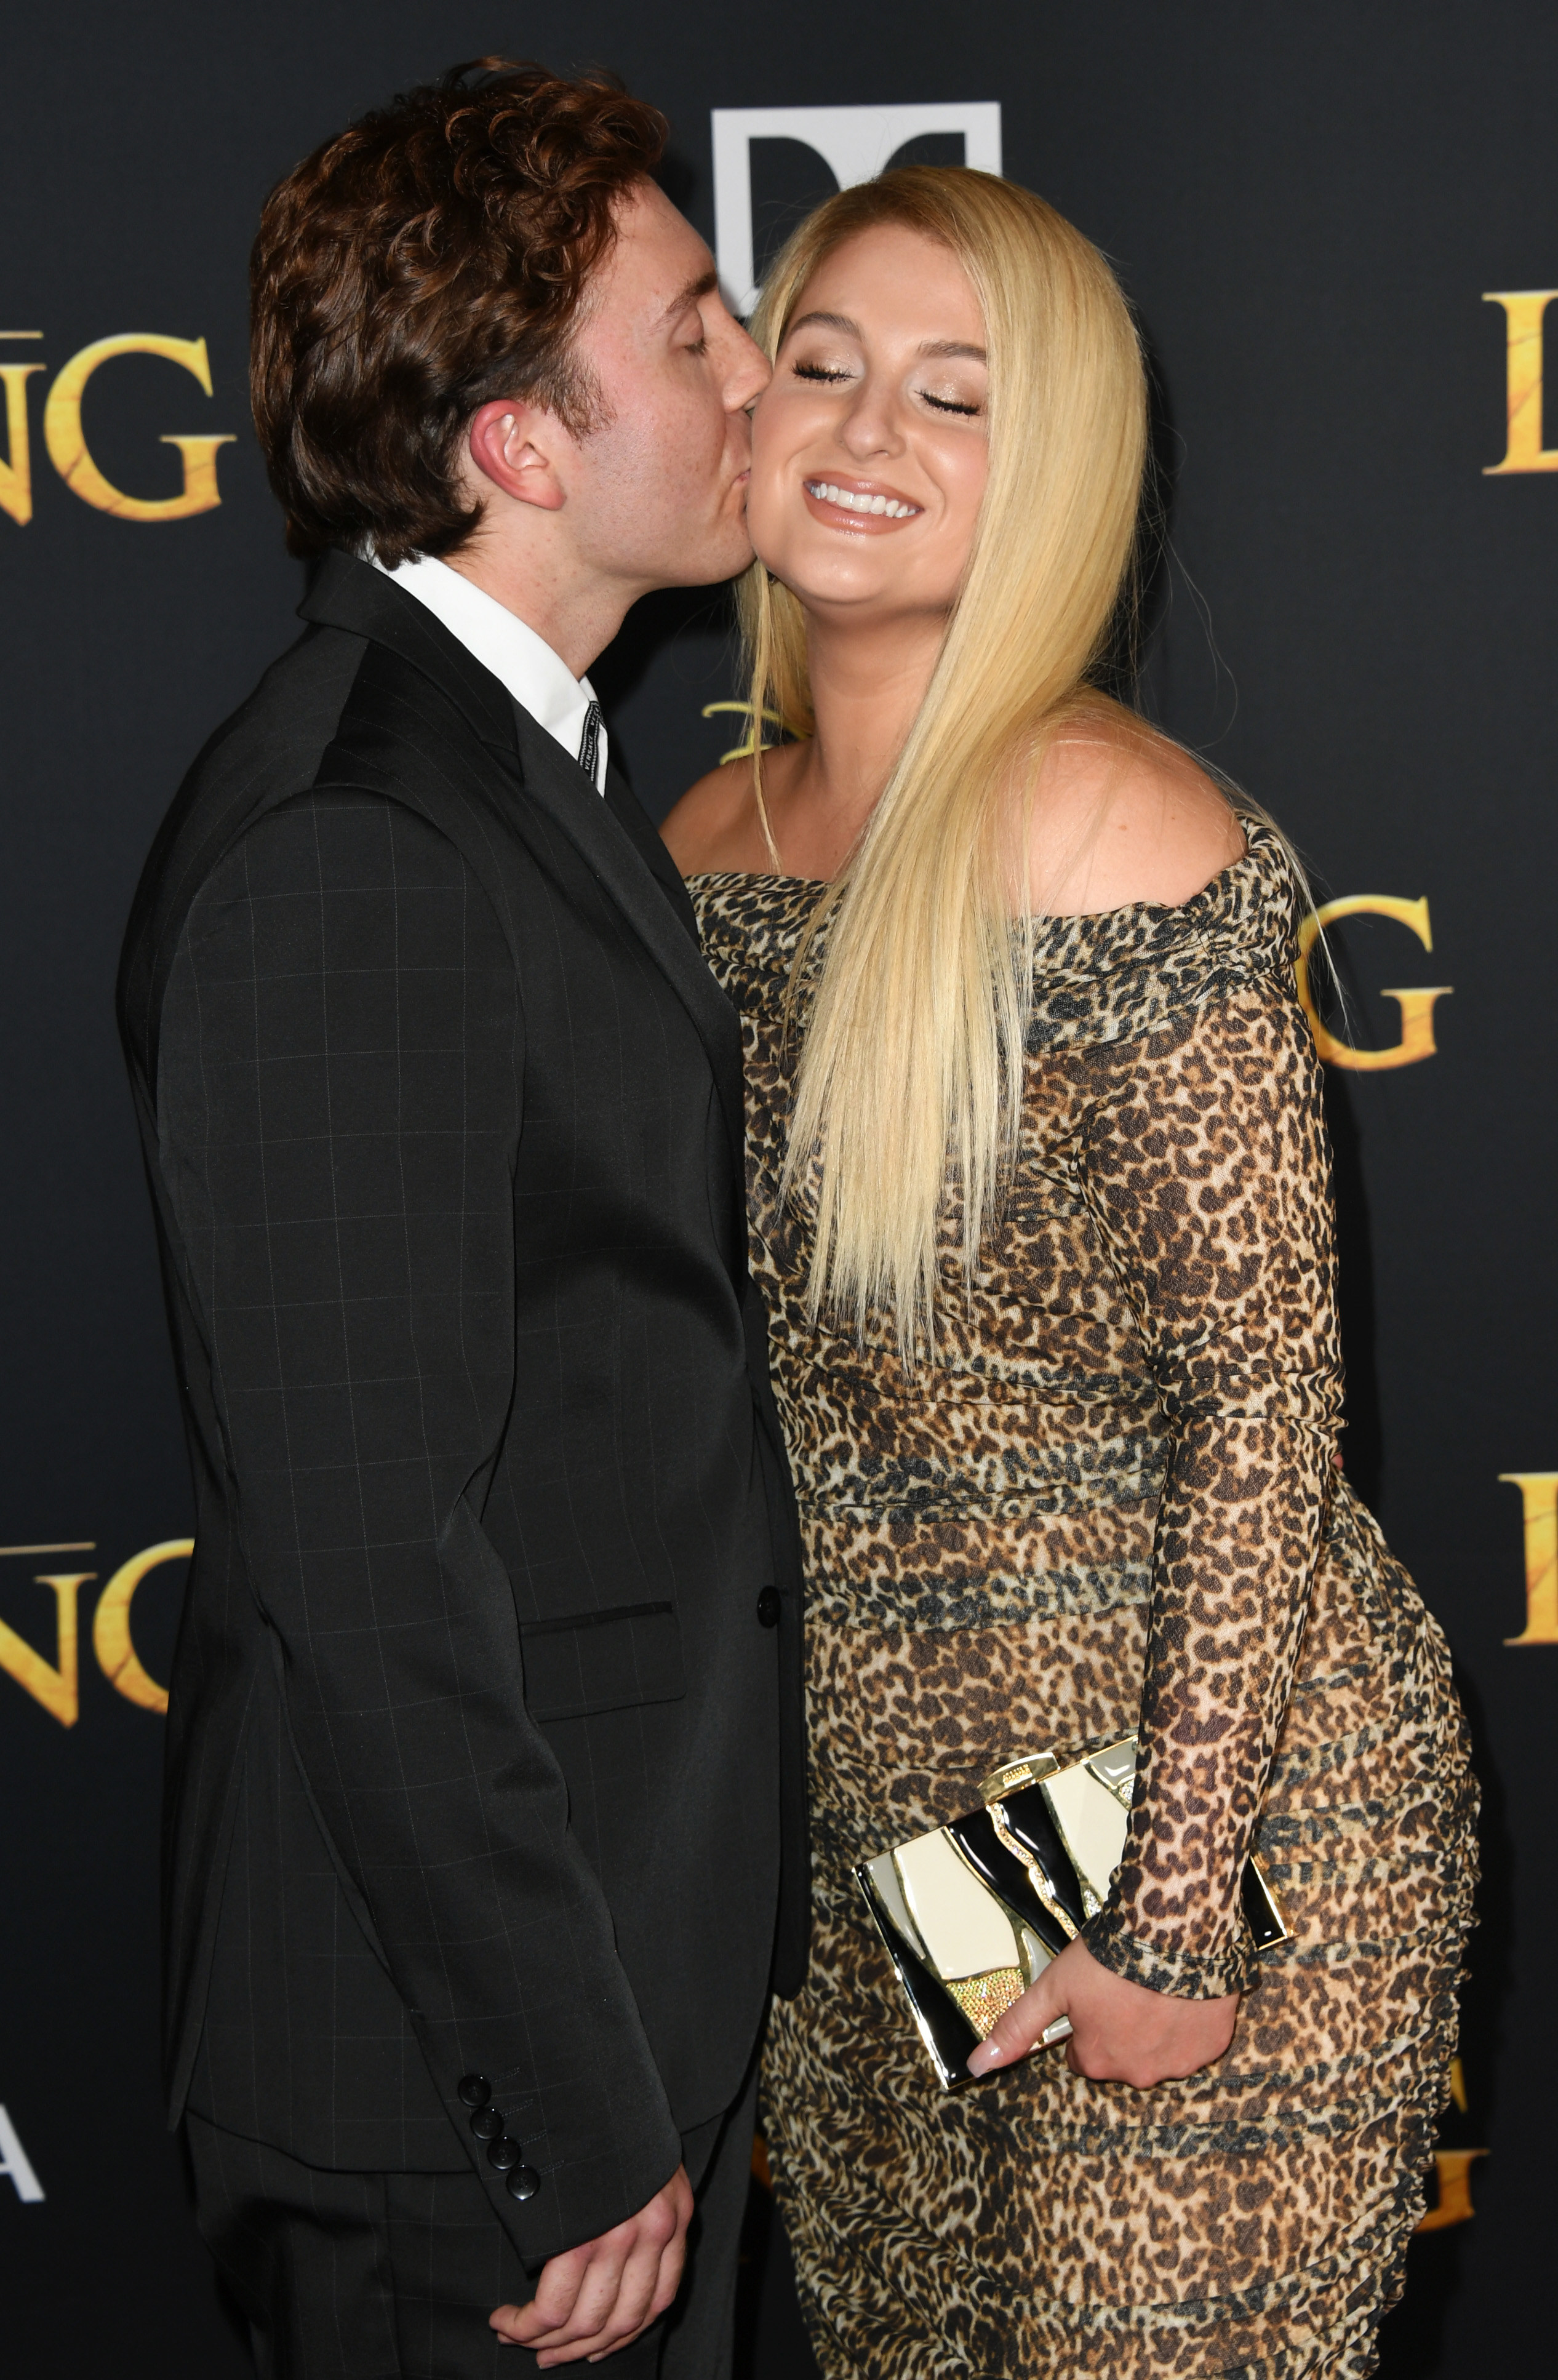 Daryl kissing Meghan on the cheek at a red carpet event